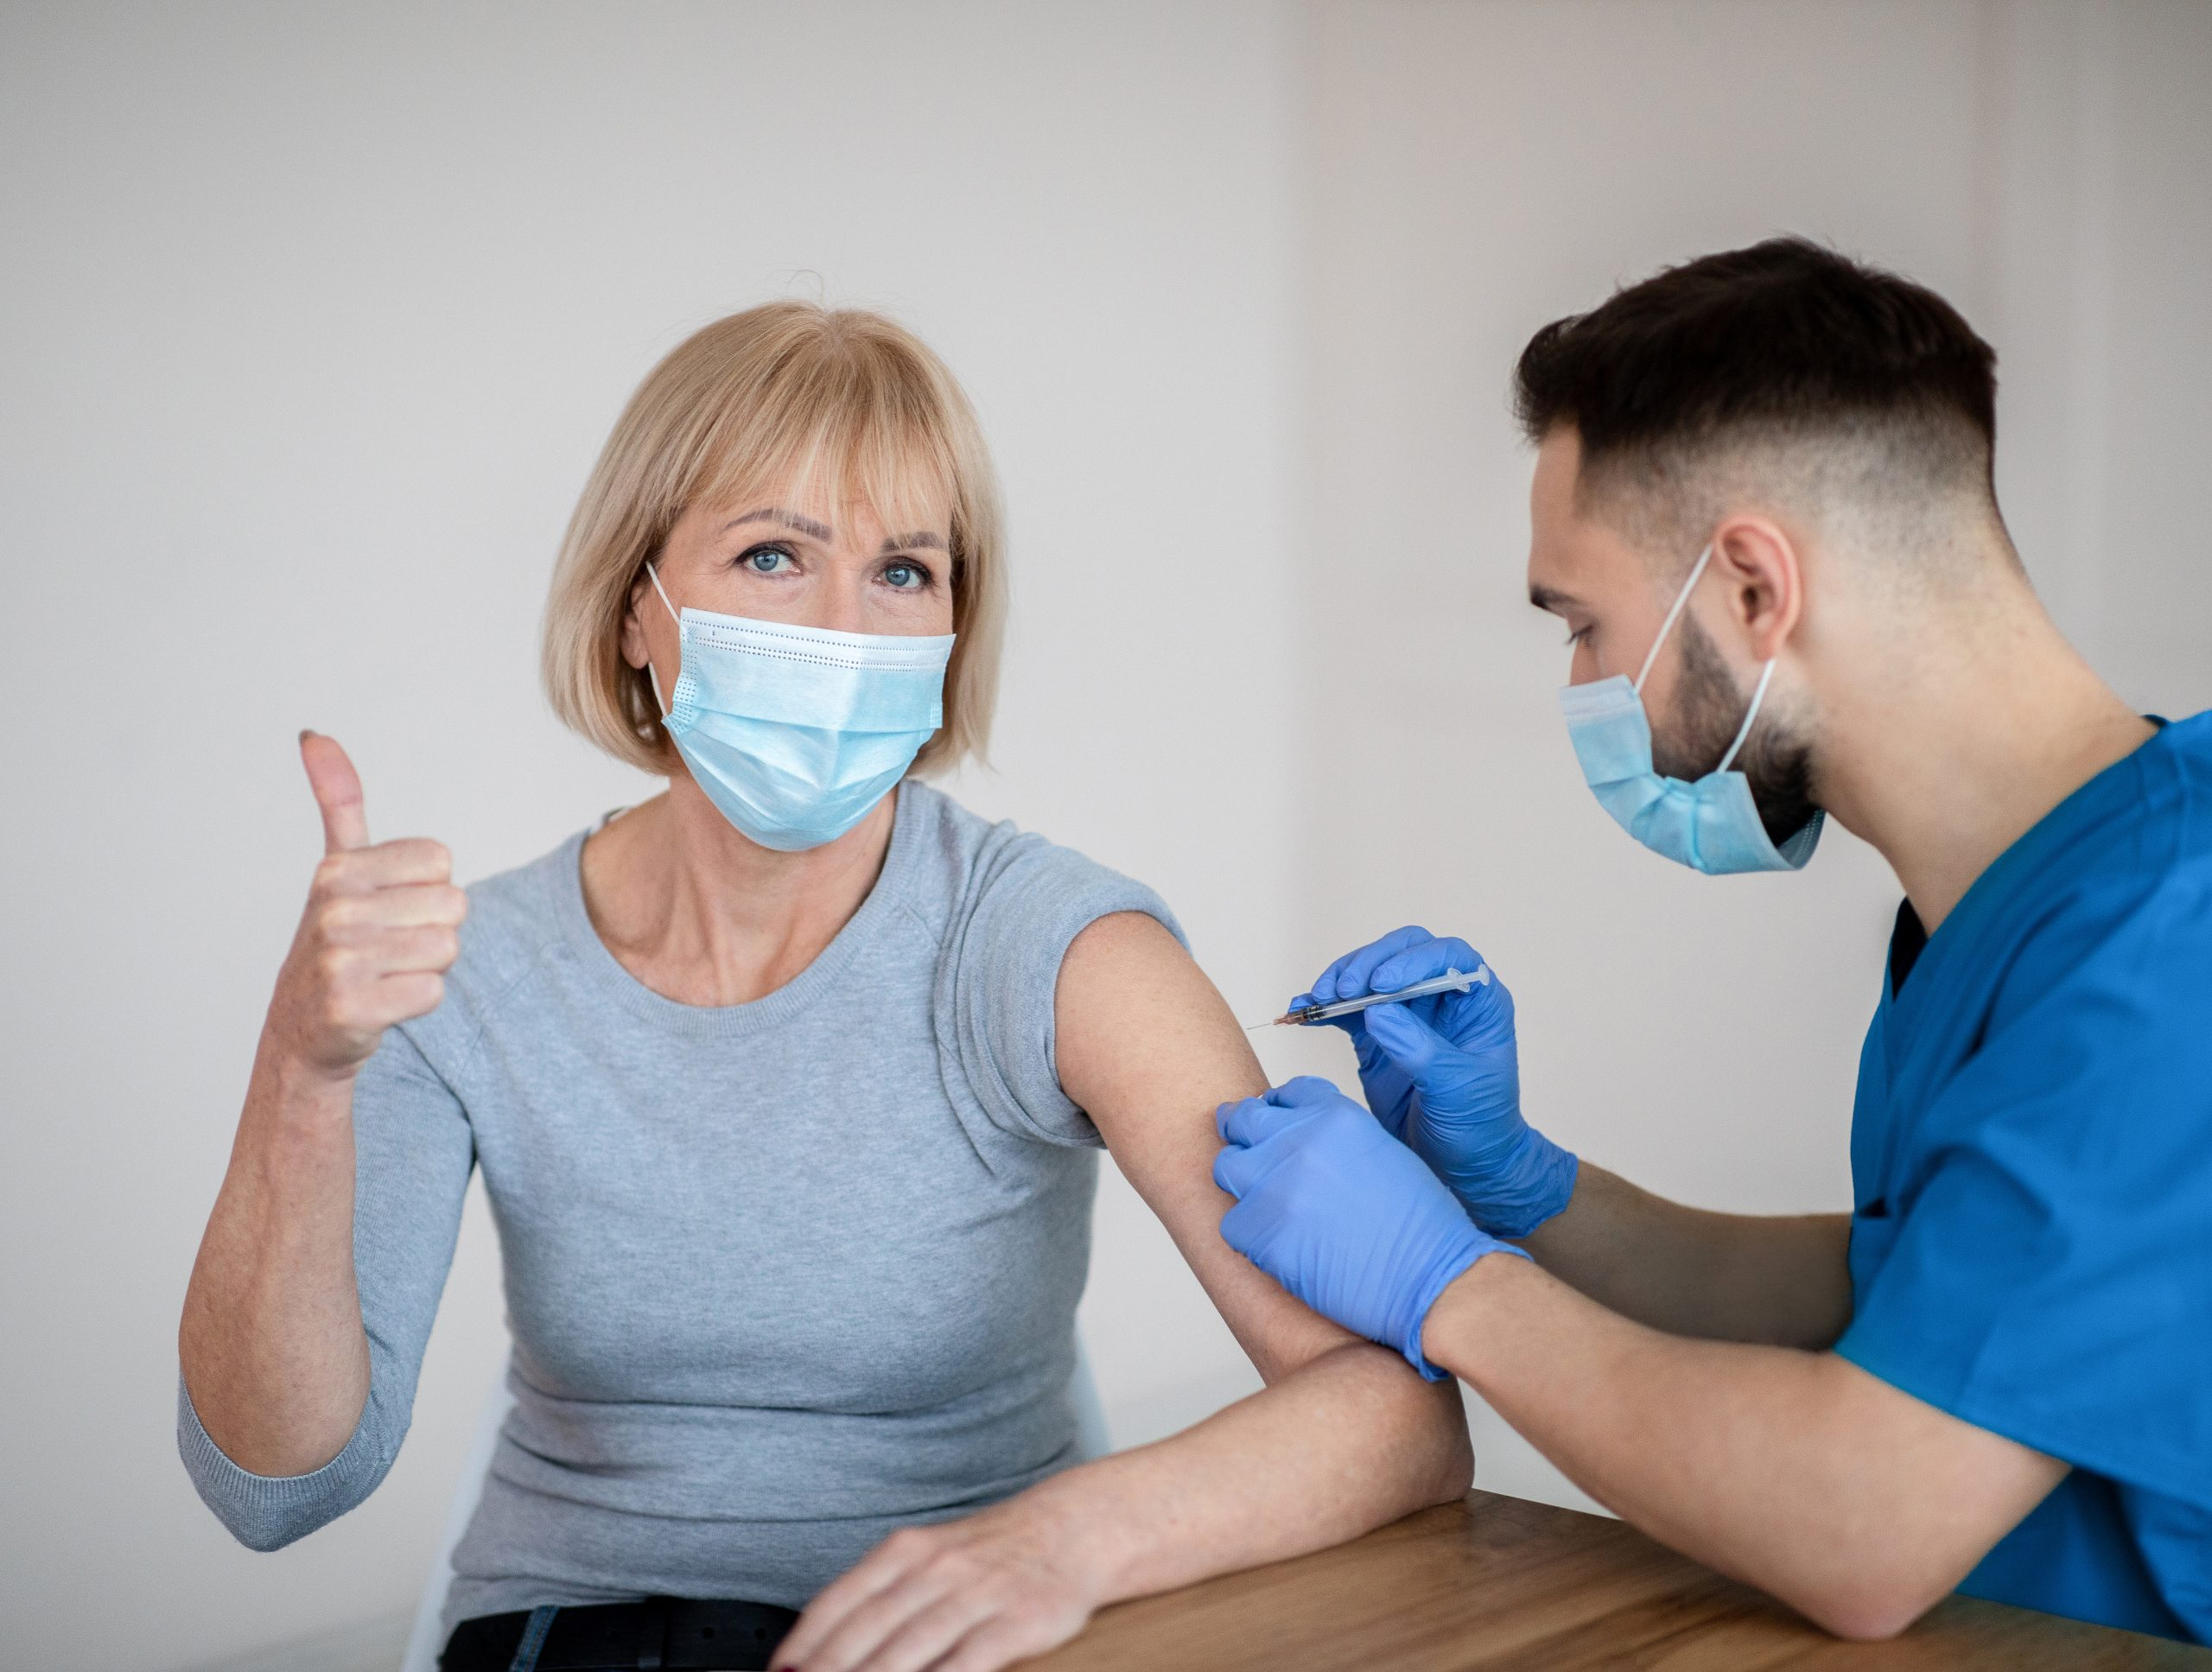 Mature woman in face mask approving of covid-19 vaccination, showing thumb up during coronavirus vaccine injection